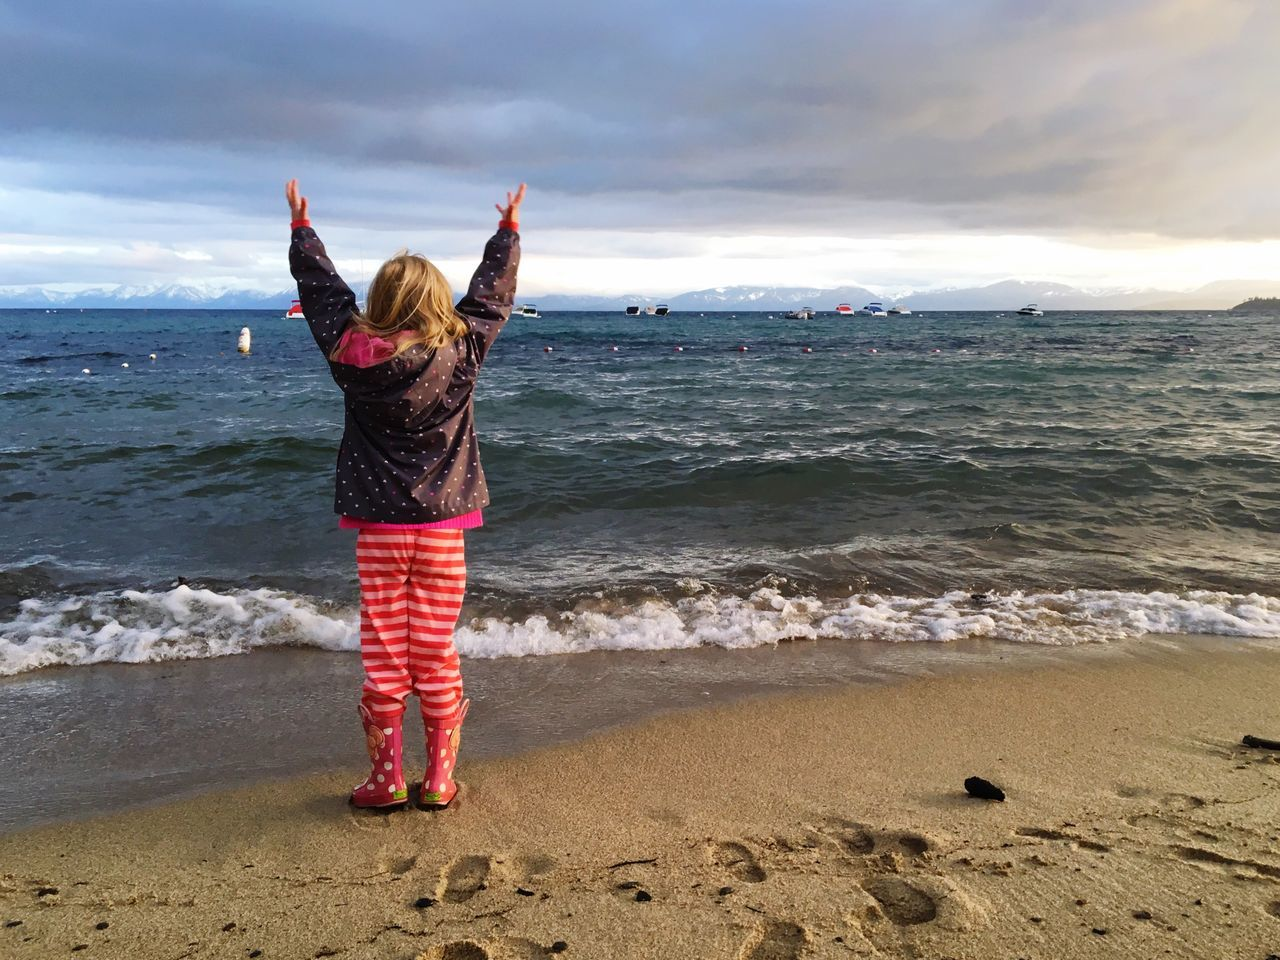 Lake Tahoe Lake Lakeside Girl Child Orchestrating Arms Up Beach Storm Clouds Childhood Feel The Journey Girl Power Original Experiences The Magic Mission